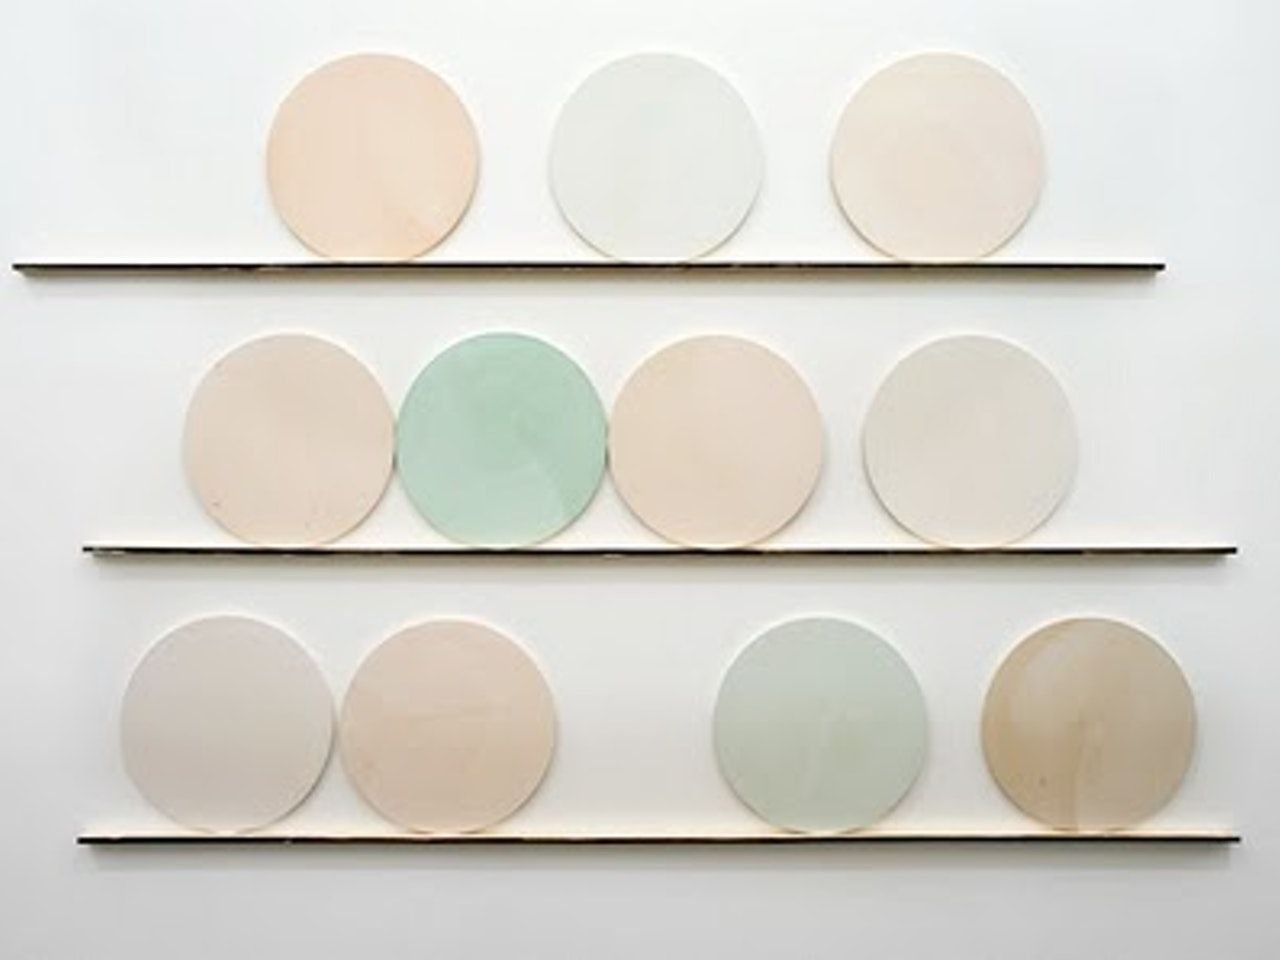 Pastel shades for spring....